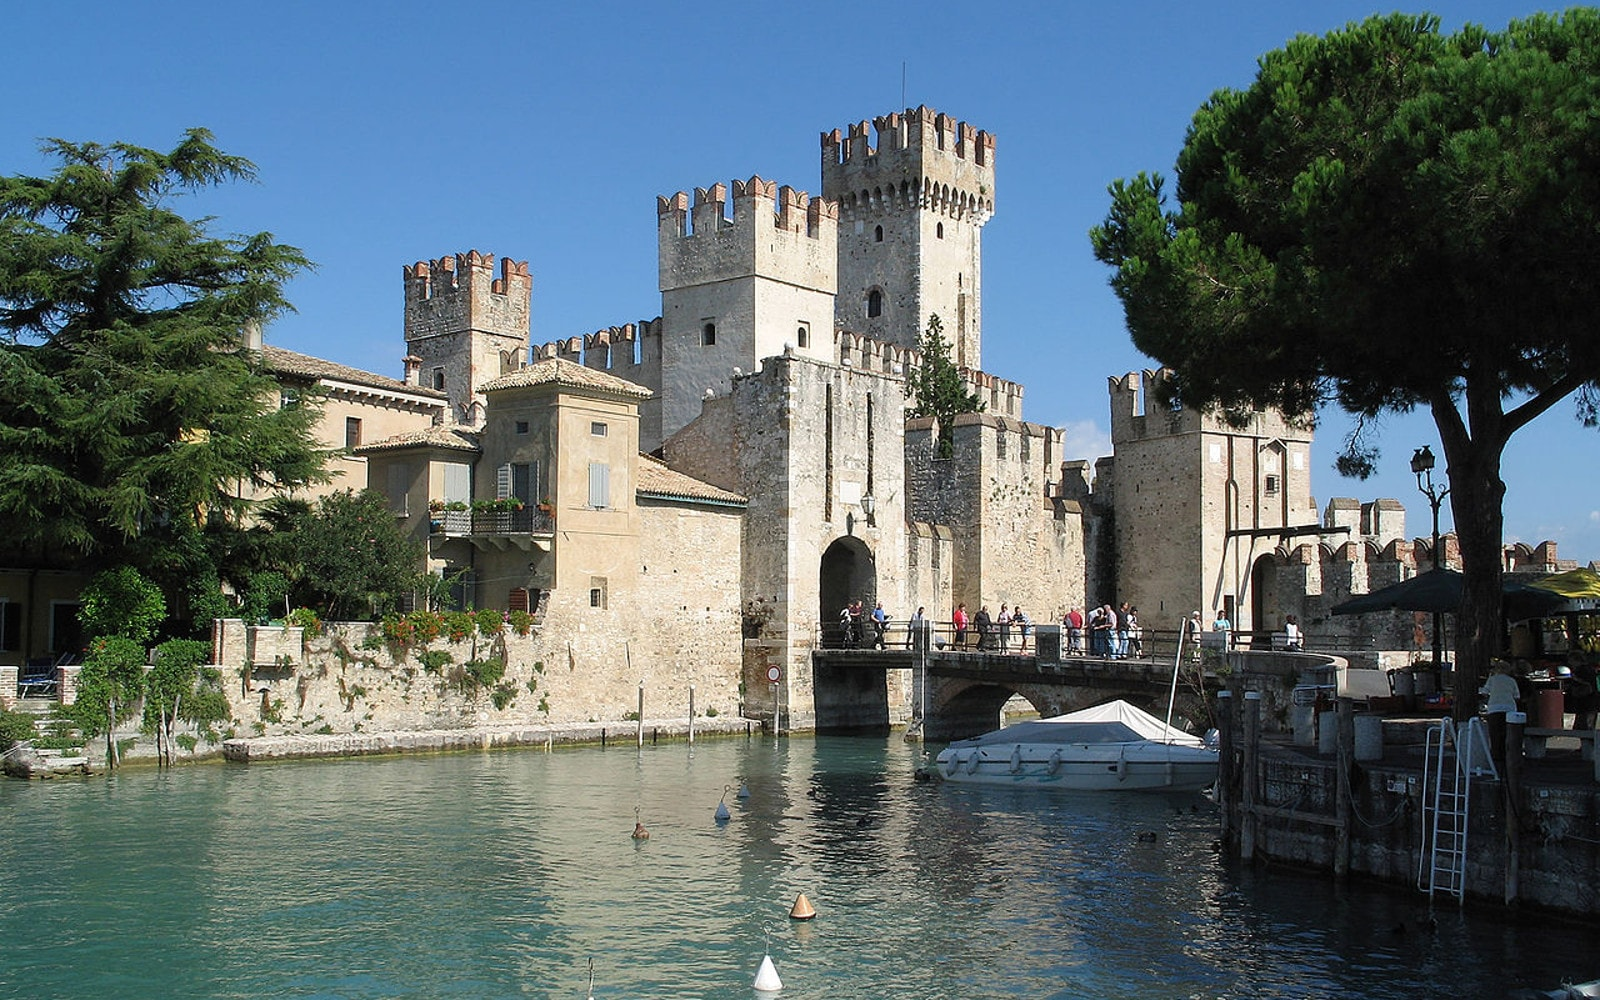 GUIDED TOUR OF SIRMIONE AND CATULLO'S GROTTOES